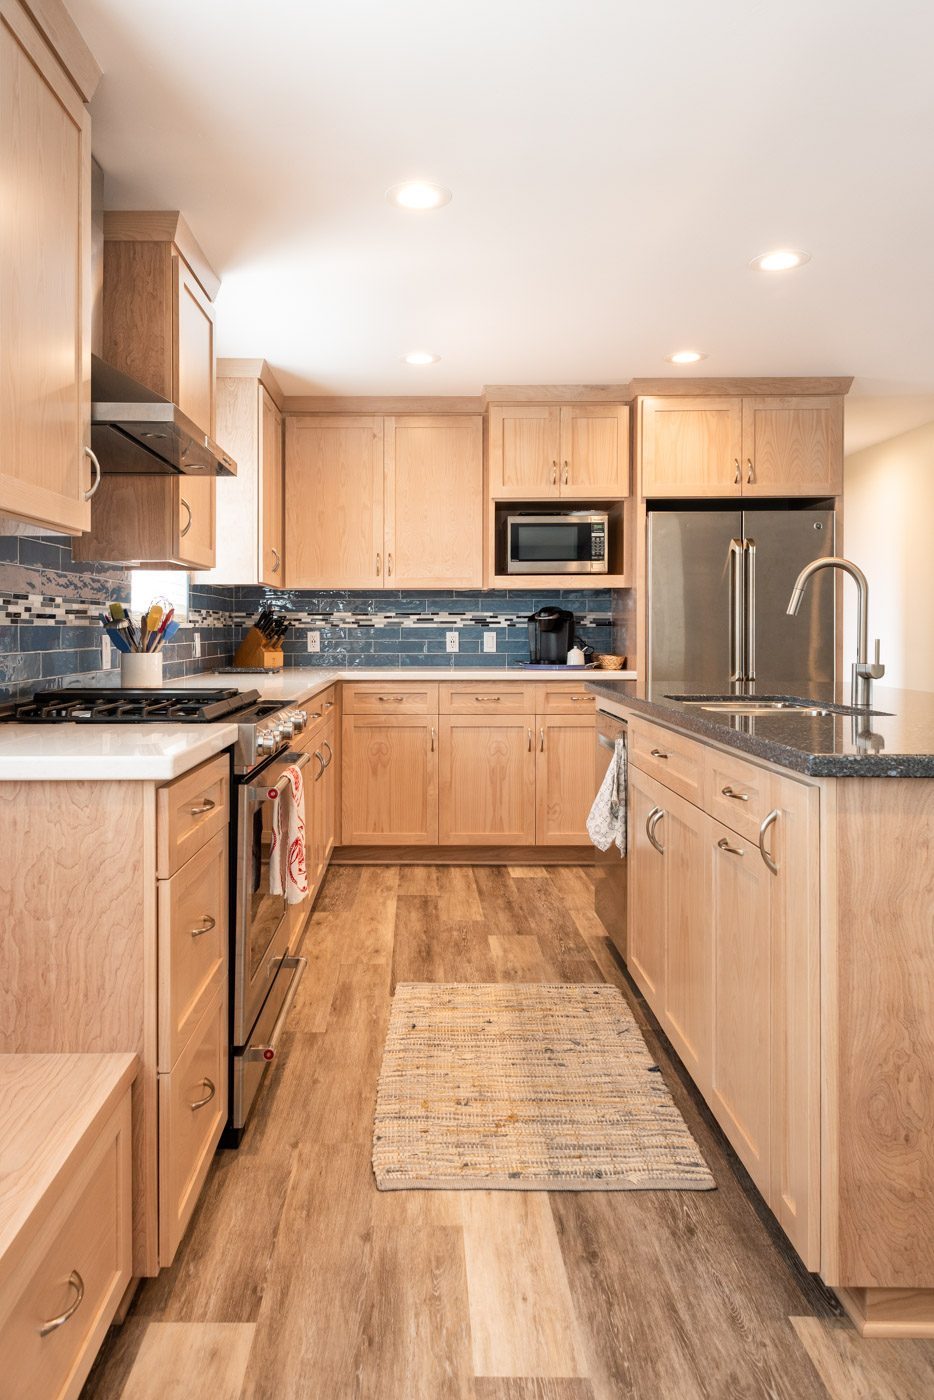 Google Image Result For Https Images Squarespace Cdn Com Content V1 5b917ab74611a059a8fc8 In 2020 Wood Kitchen Natural Wood Kitchen Cabinets Kitchen Cabinets Upgrade